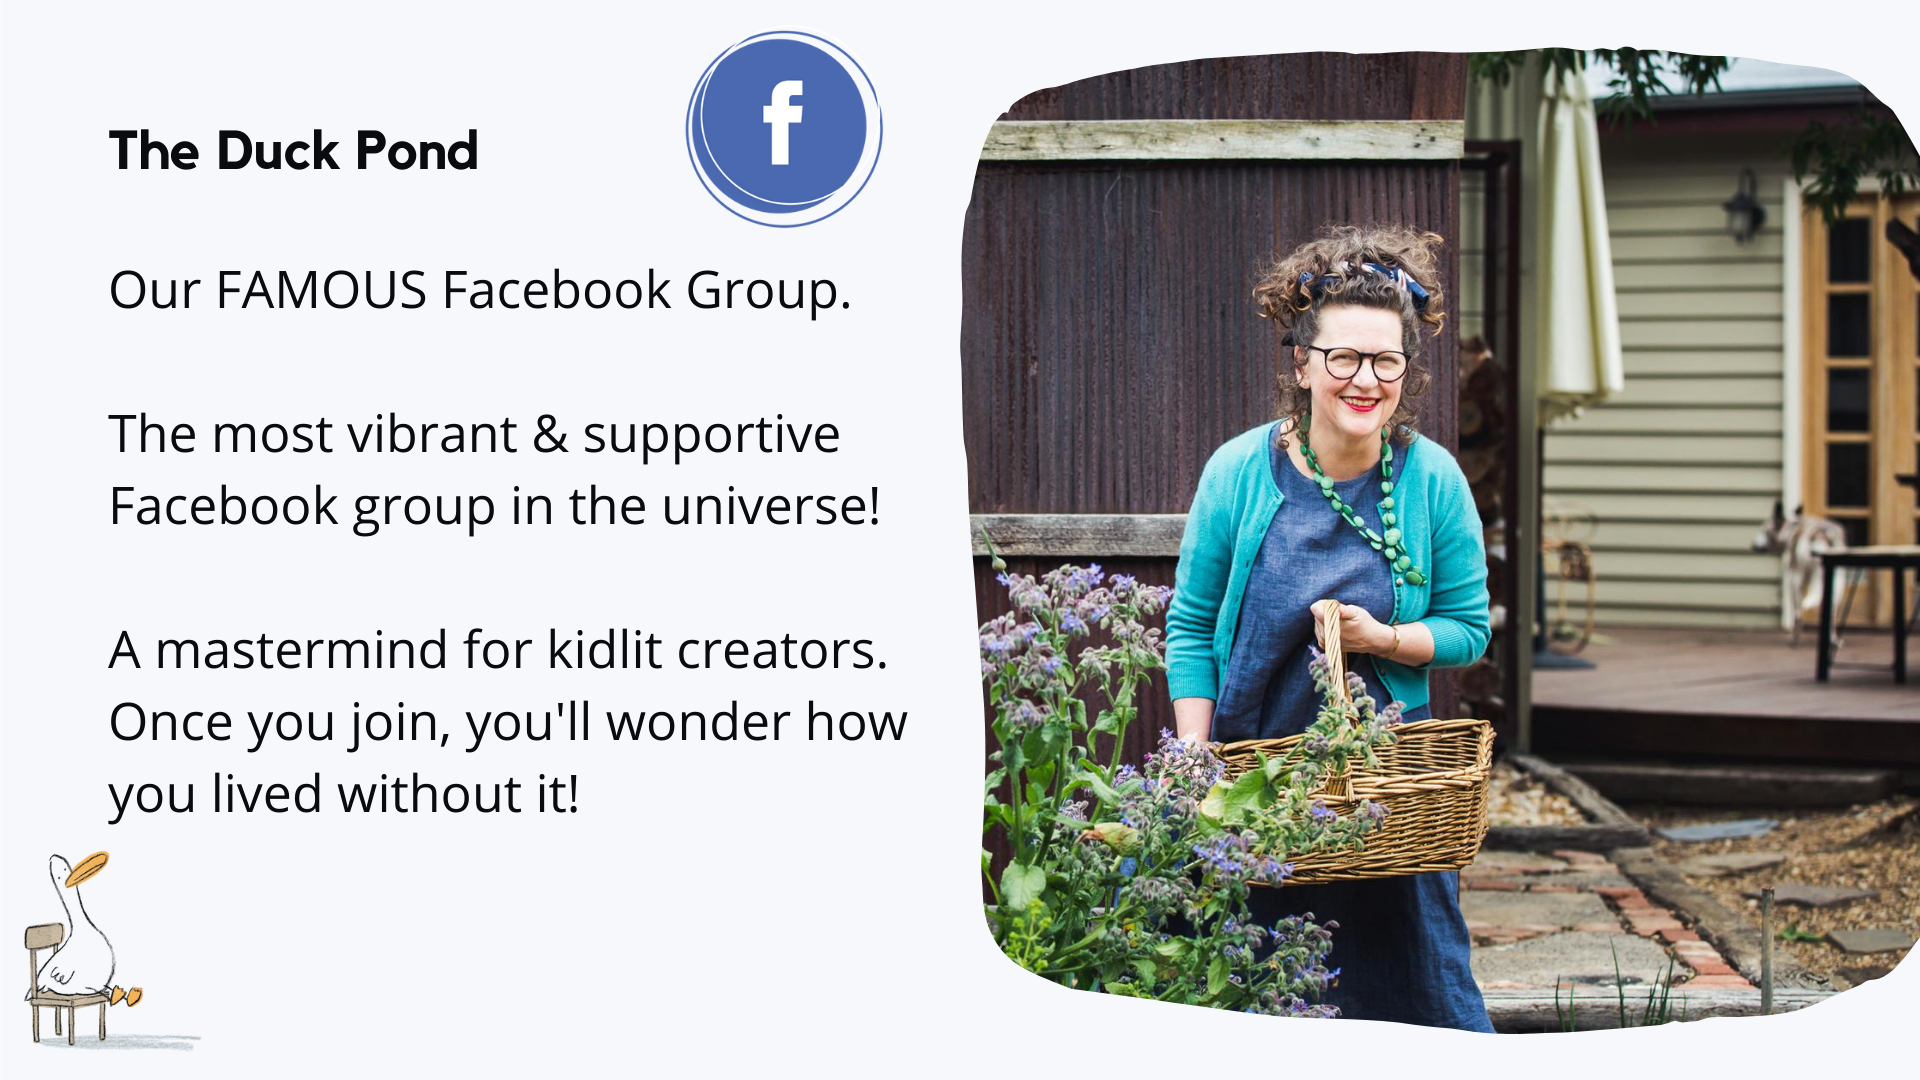 The Duck Pond Our FAMOUS Facebook Group. The most vibrant & supportive Facebook group in the universe! A mastermind for kidlit creators. Once you join, you'll wonder how you lived without it!